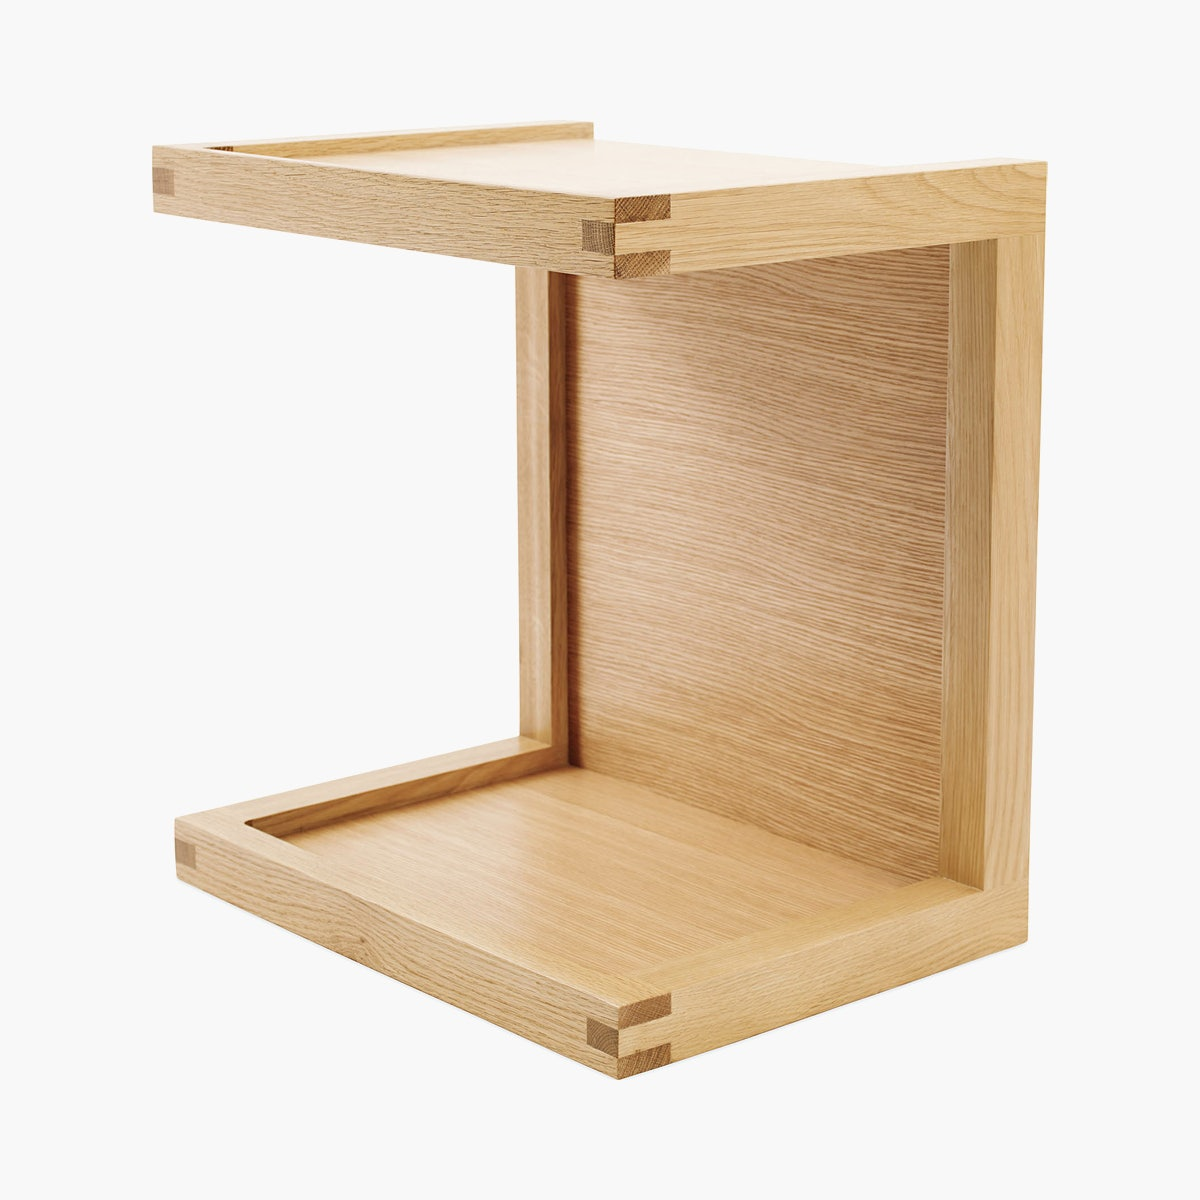 Matera Bedside Table, without Drawer